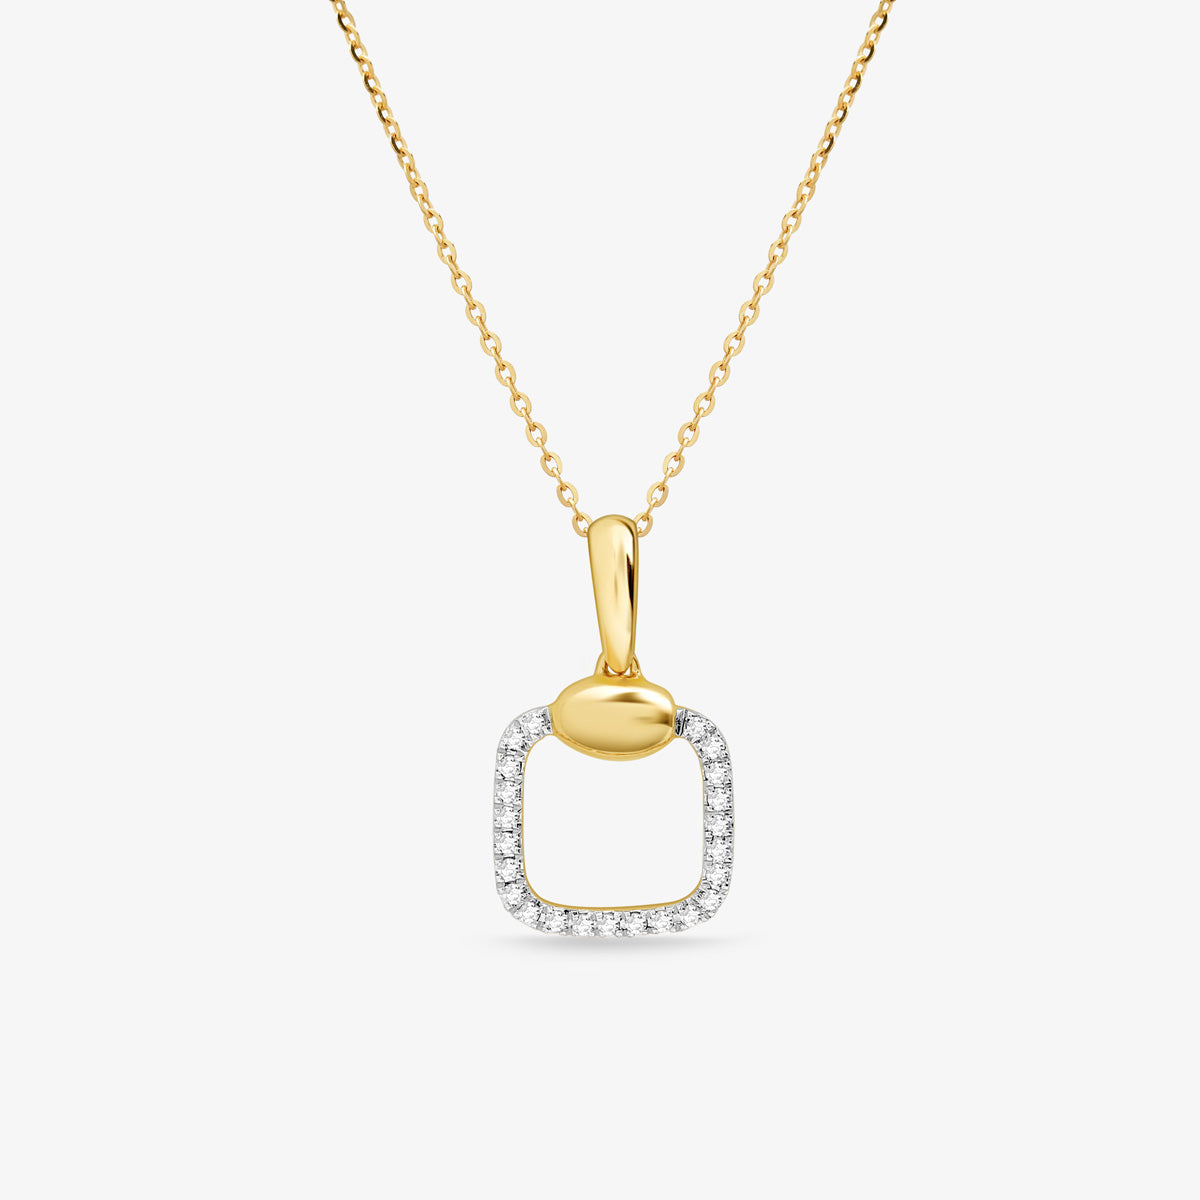 Women's Cushion Cut Halo Diamond Pendant, Includes Adjustable Gold Chain - estellacollection